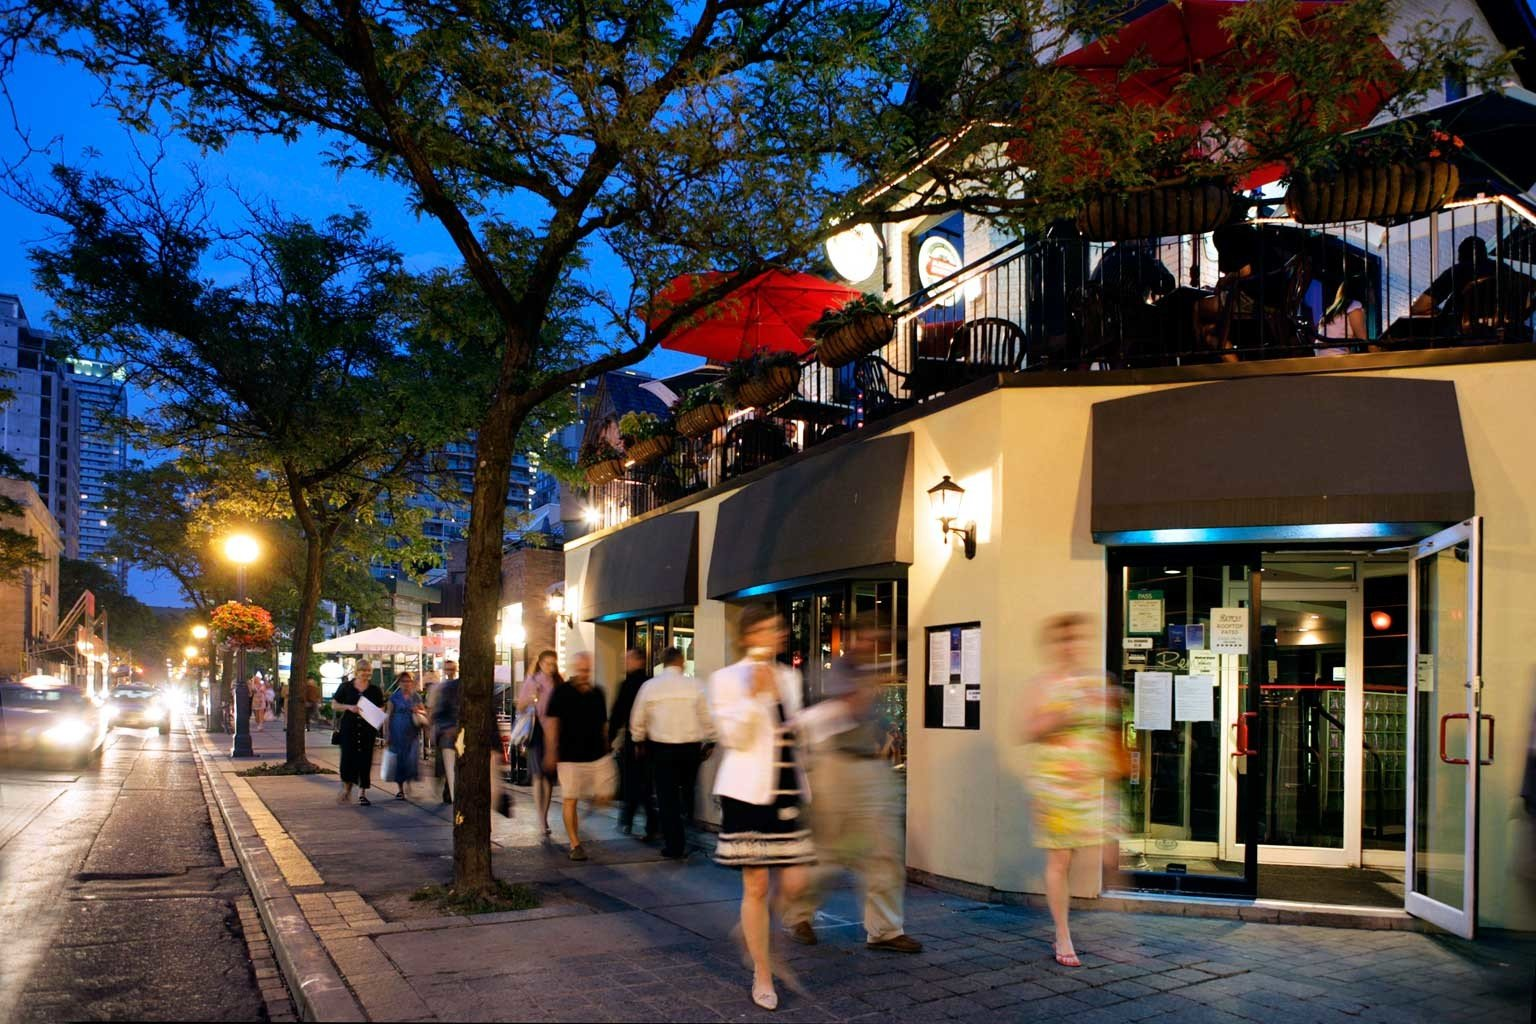 City Exterior Nightlife Shop tree road way crowd street Town scene Downtown sidewalk evening pedestrian shopping